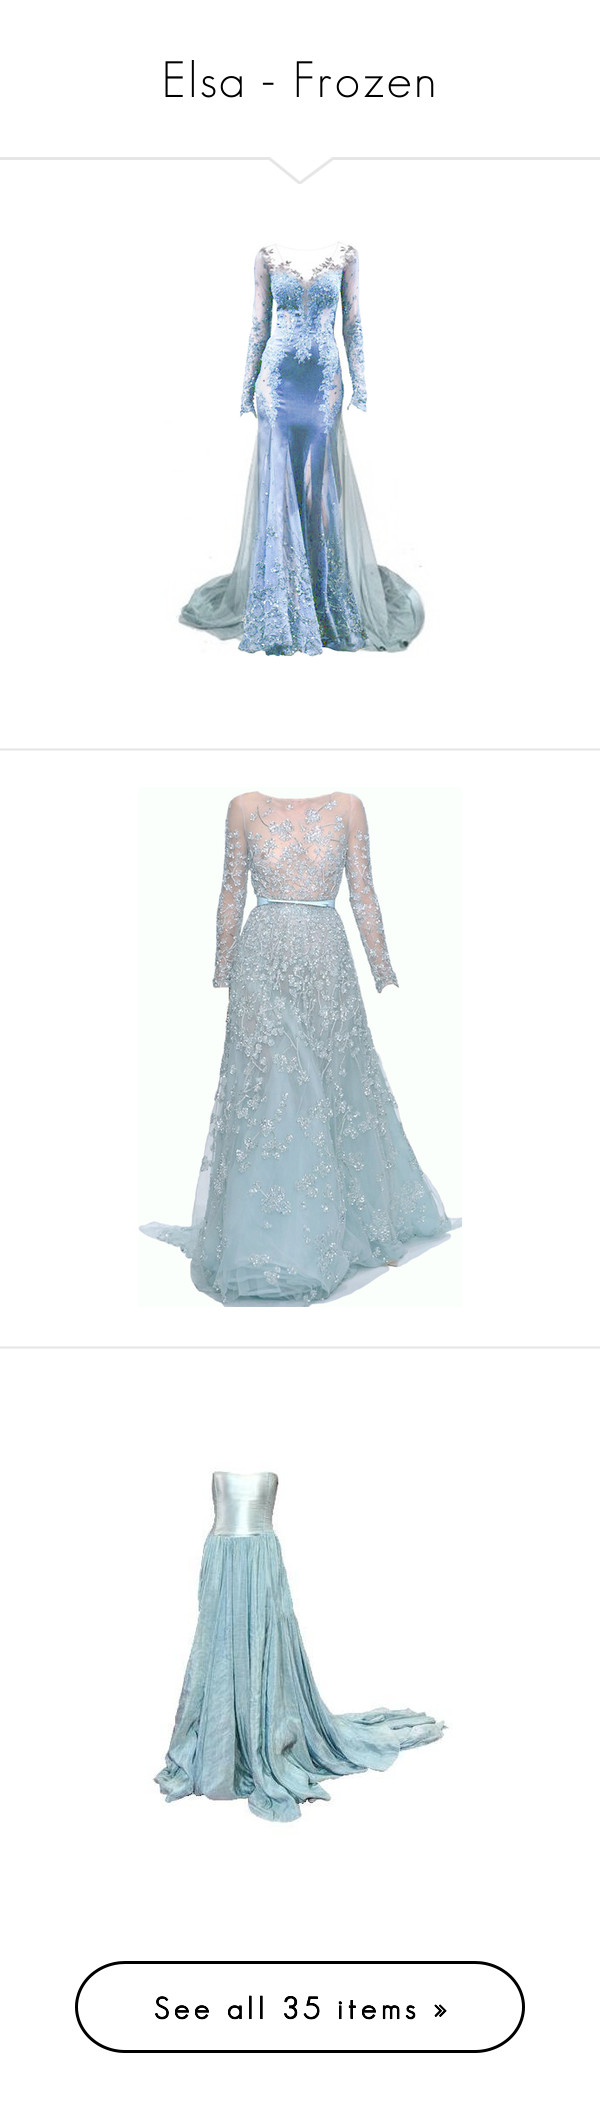 """""""Elsa - Frozen"""" by beyond-infinity444 ❤ liked on Polyvore featuring createjewels, dresses, gowns, long dresses, vestidos, blue, long blue dress, blue gown, blue dress and blue evening dresses"""